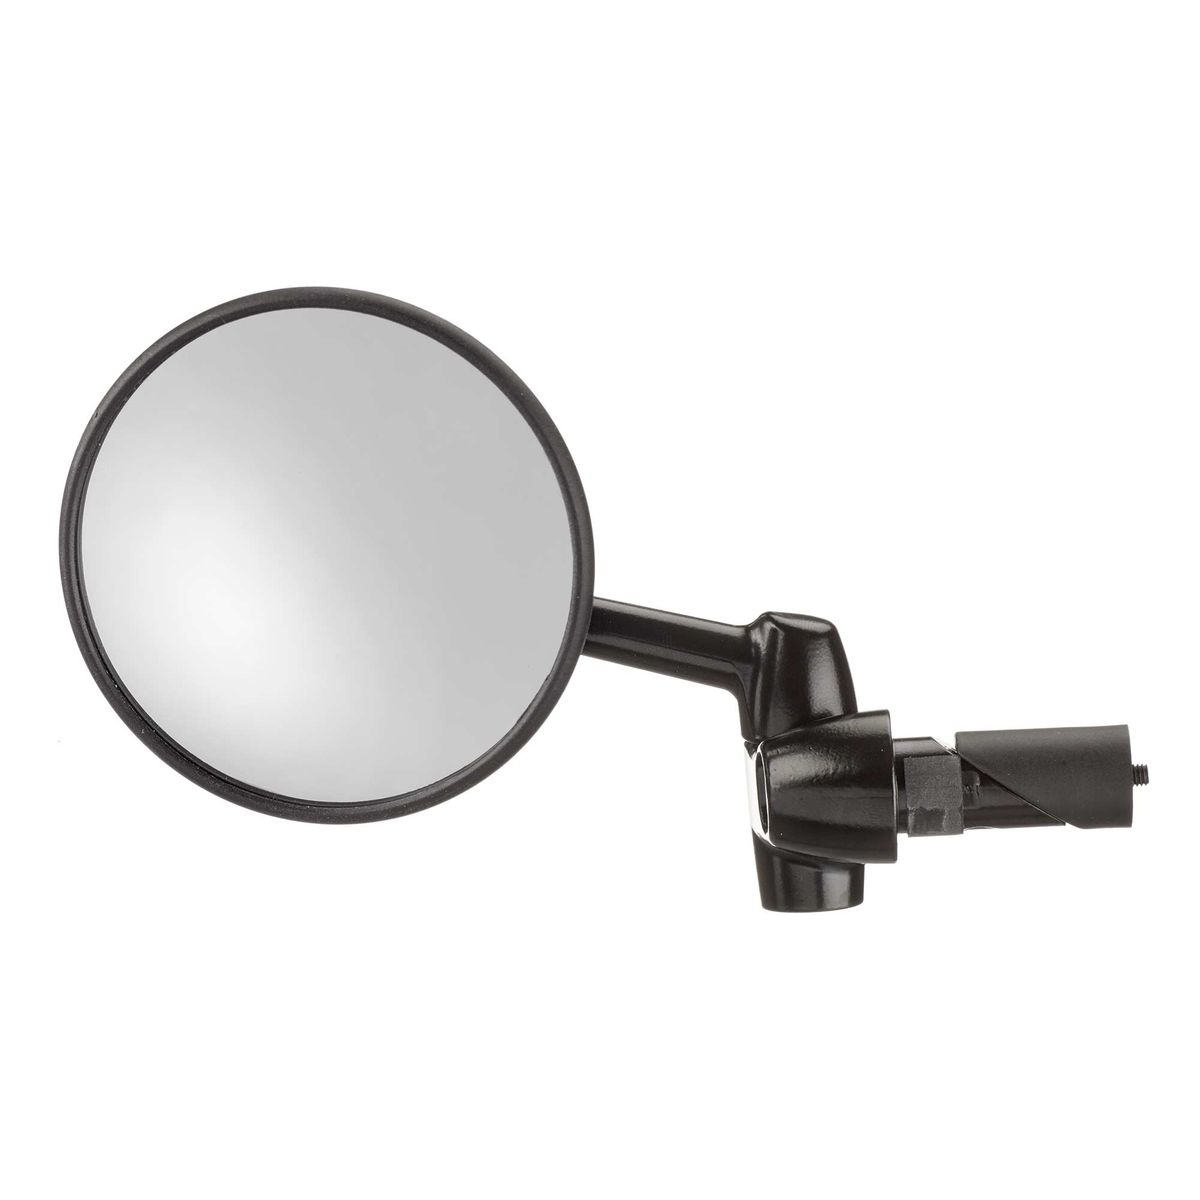 Cycle Star 80 903/7 and 903/7-3 Bike Mirror